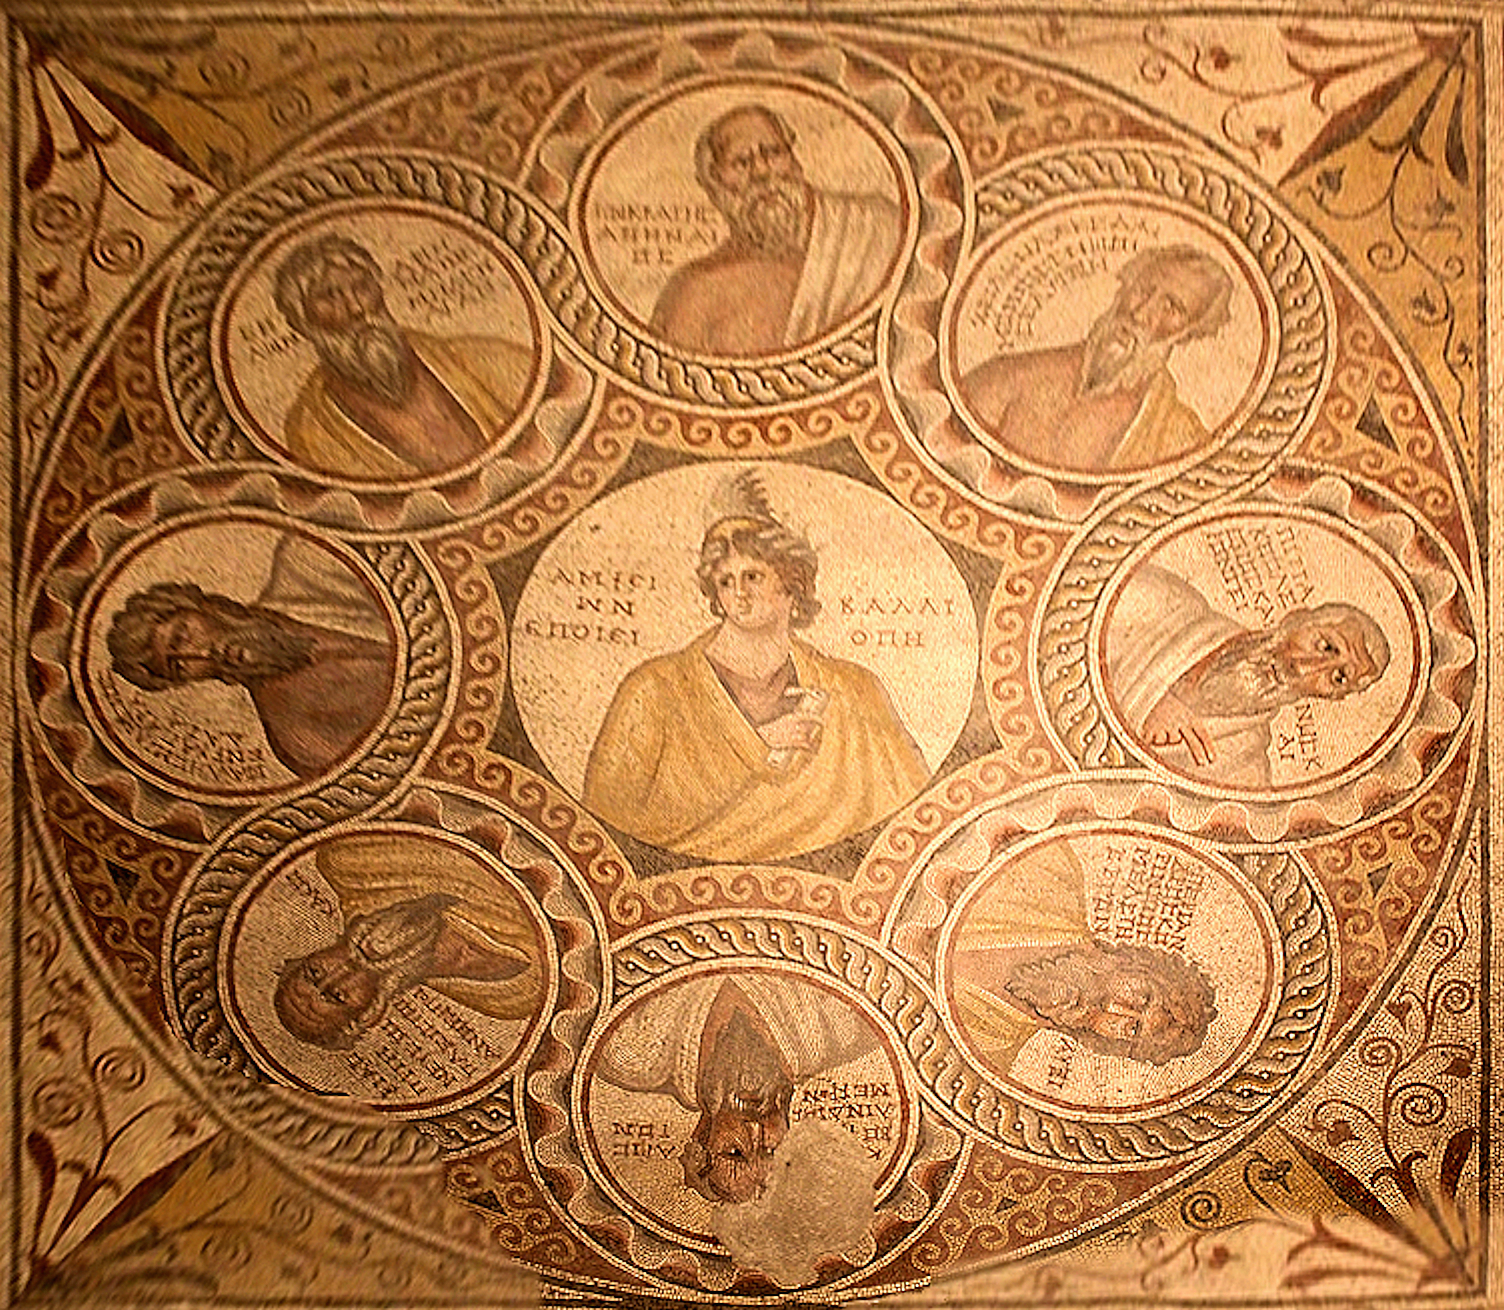 Seven_Sages_of_Greece